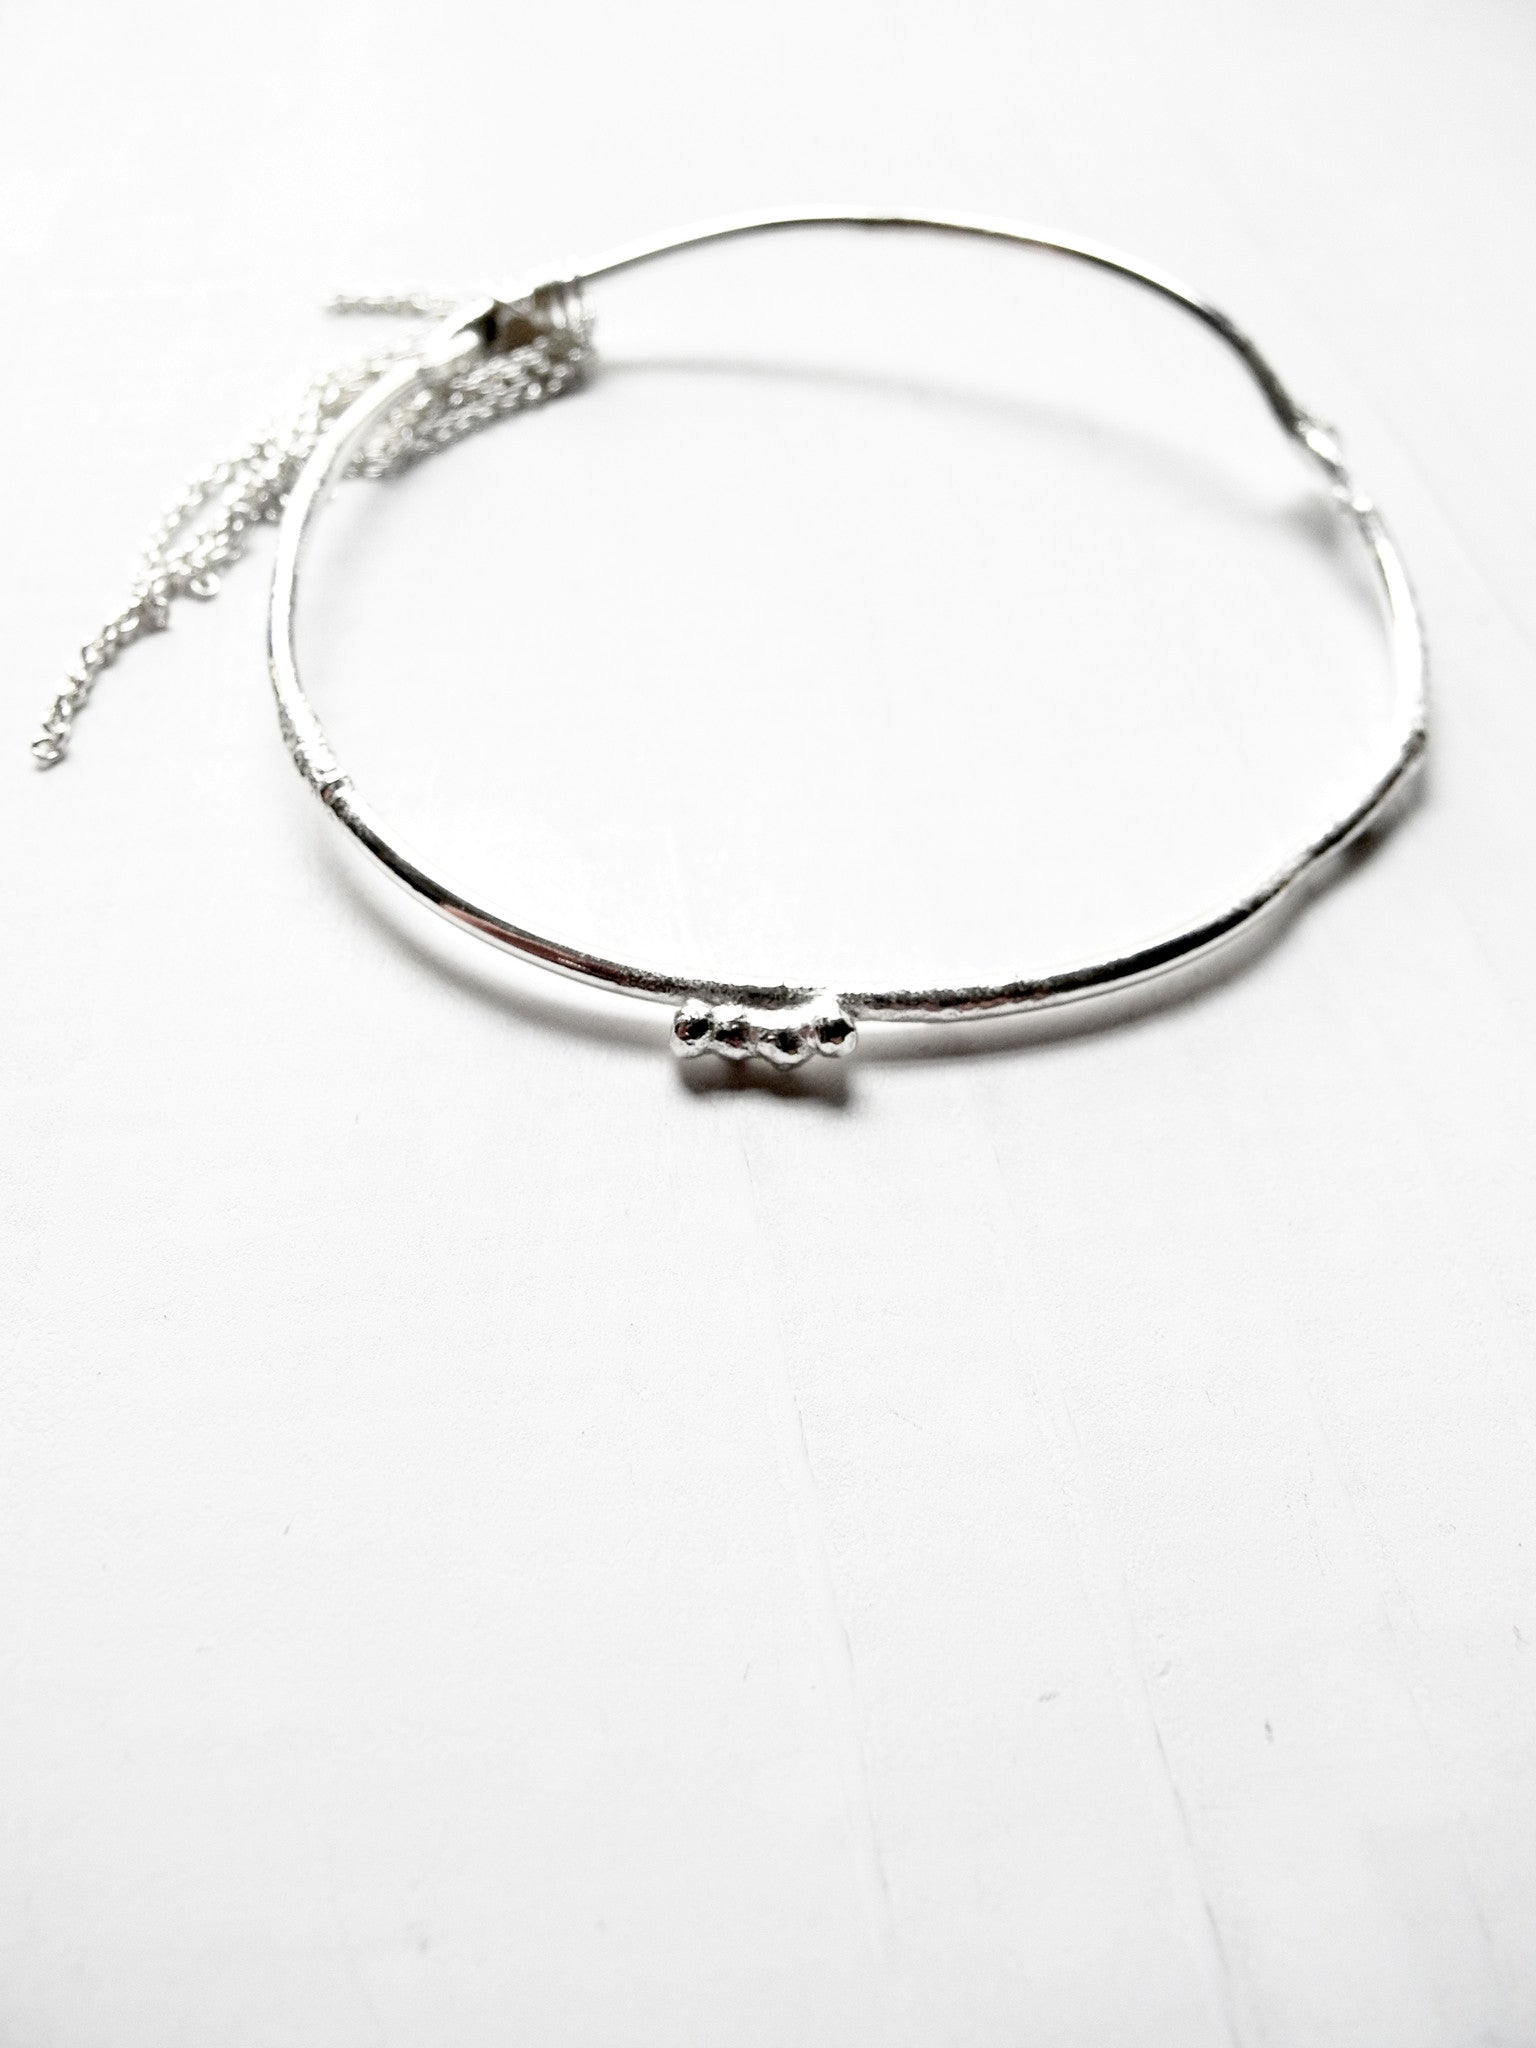 after nature bangle with chain fringe